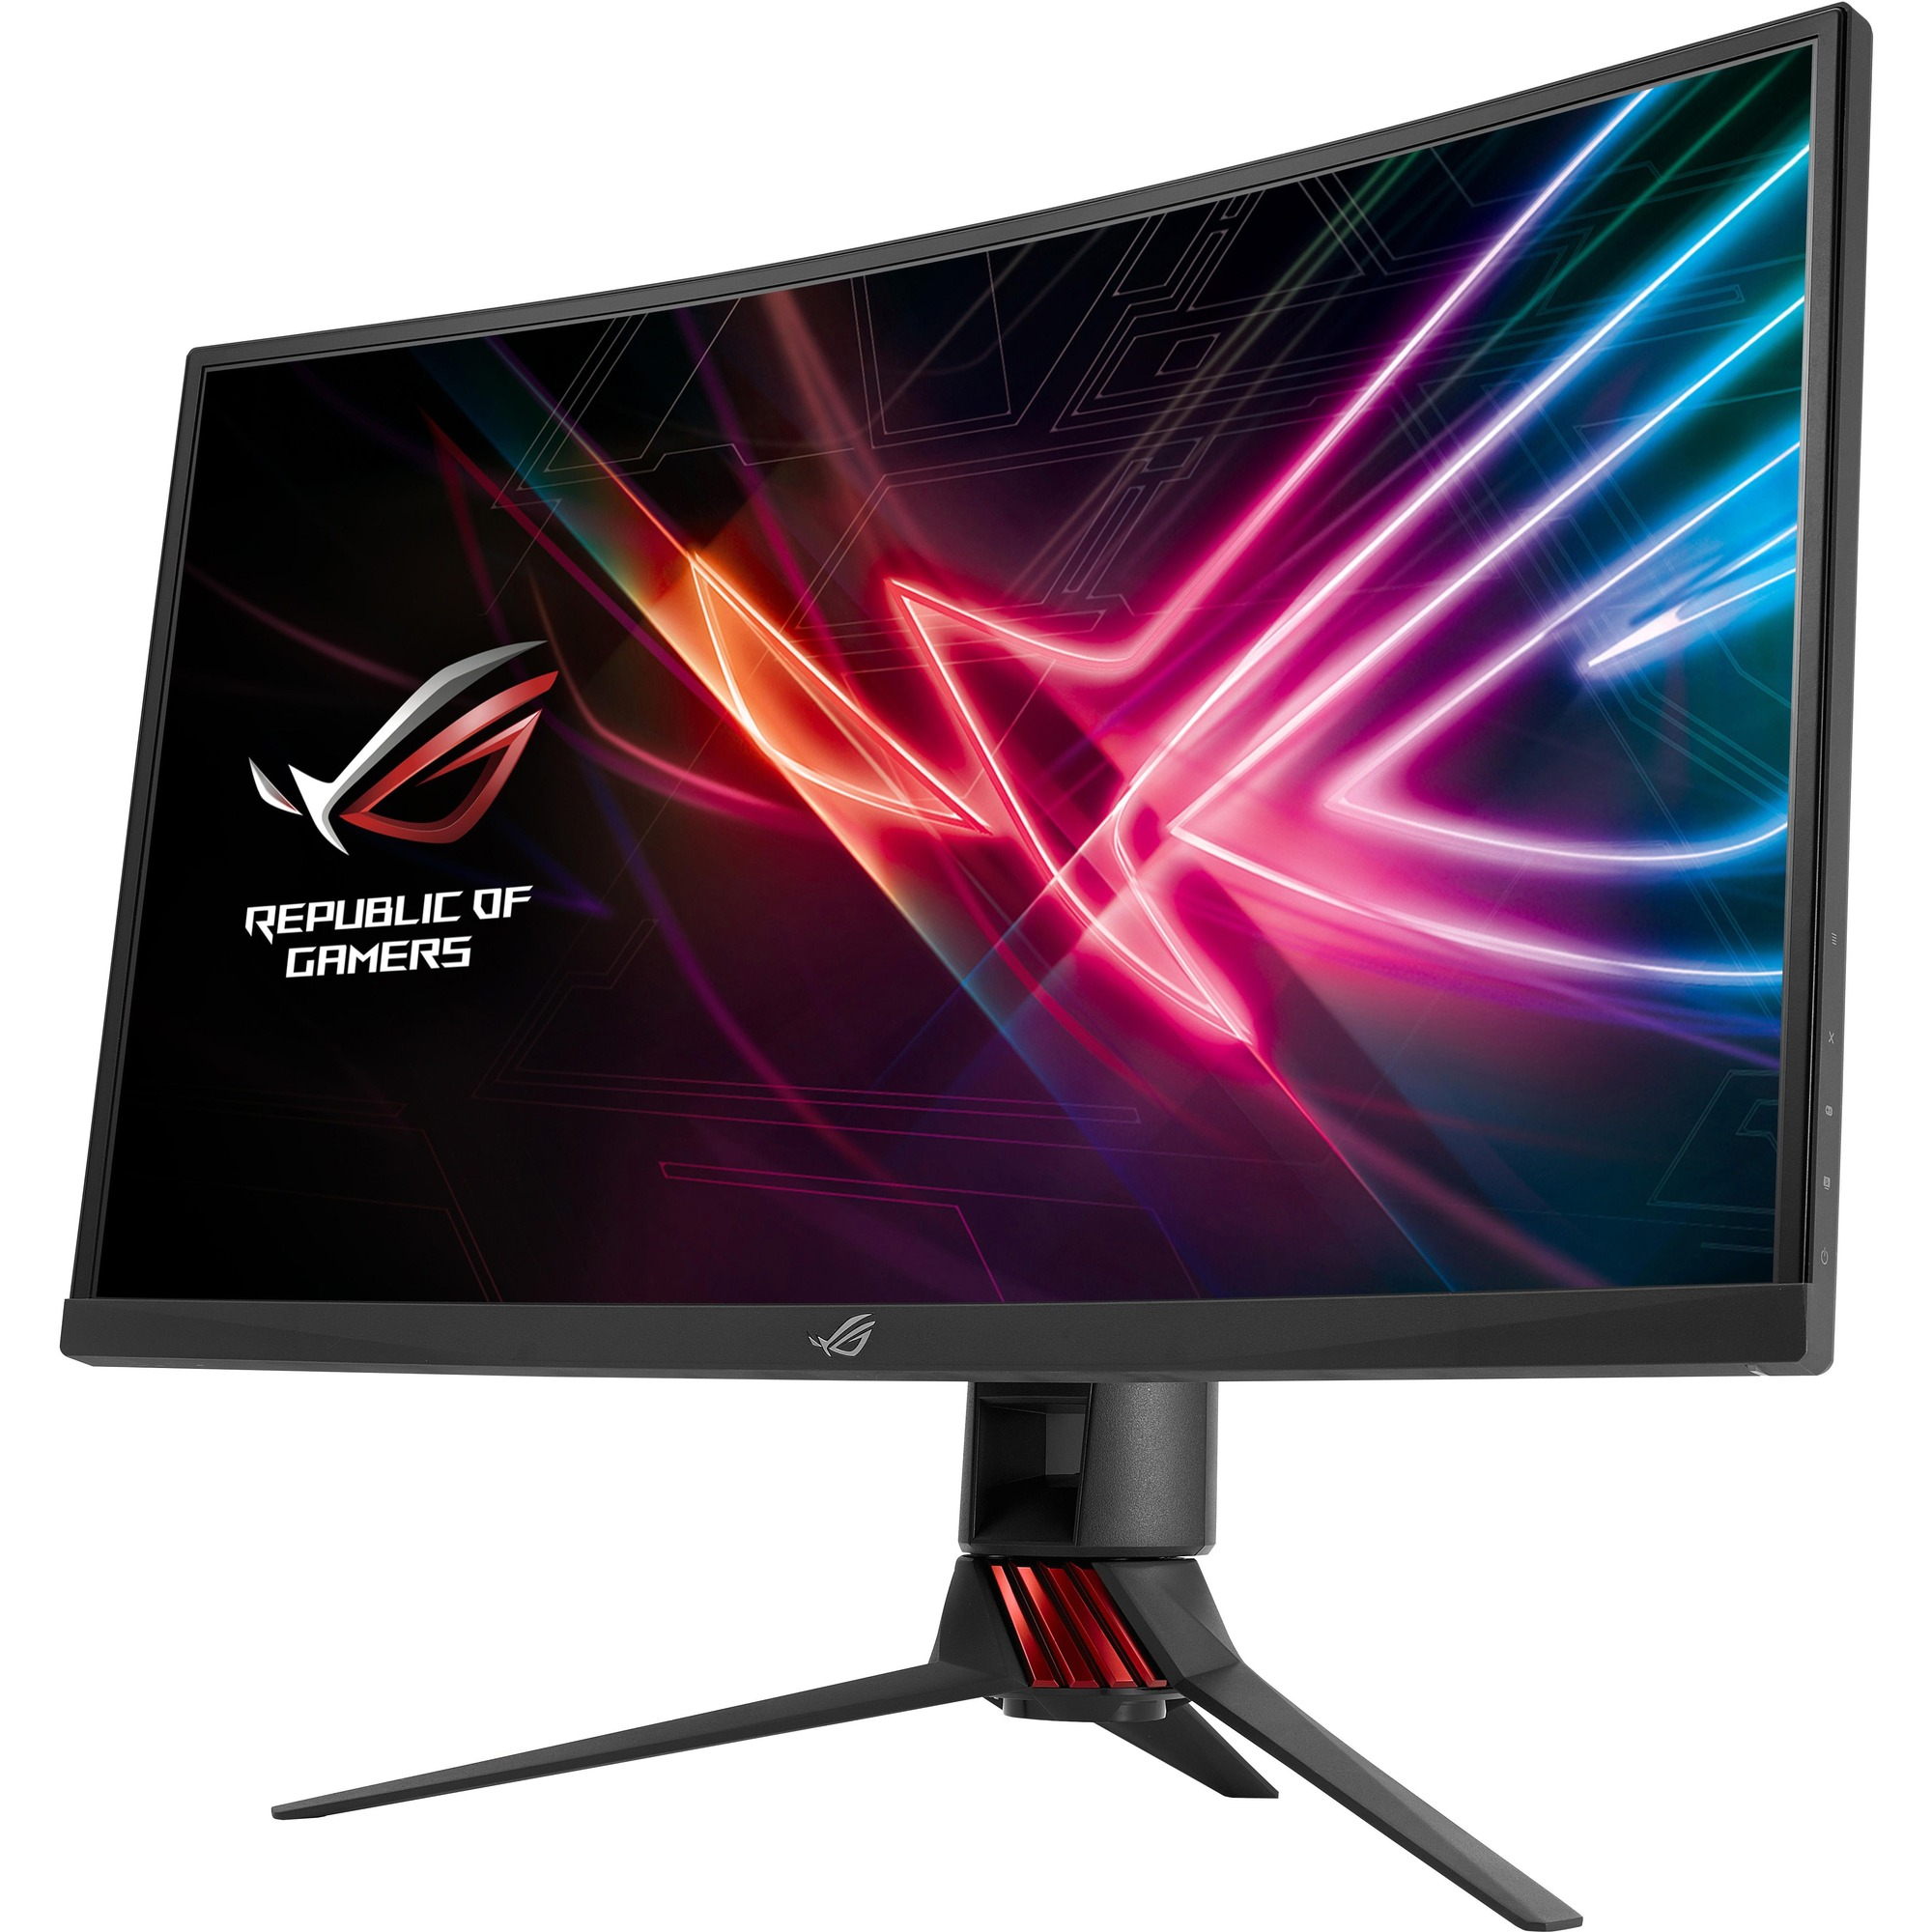 ROG Strix XG27VQ  27And#34; LED Monitor - 16:9 - 4 ms 144Hz